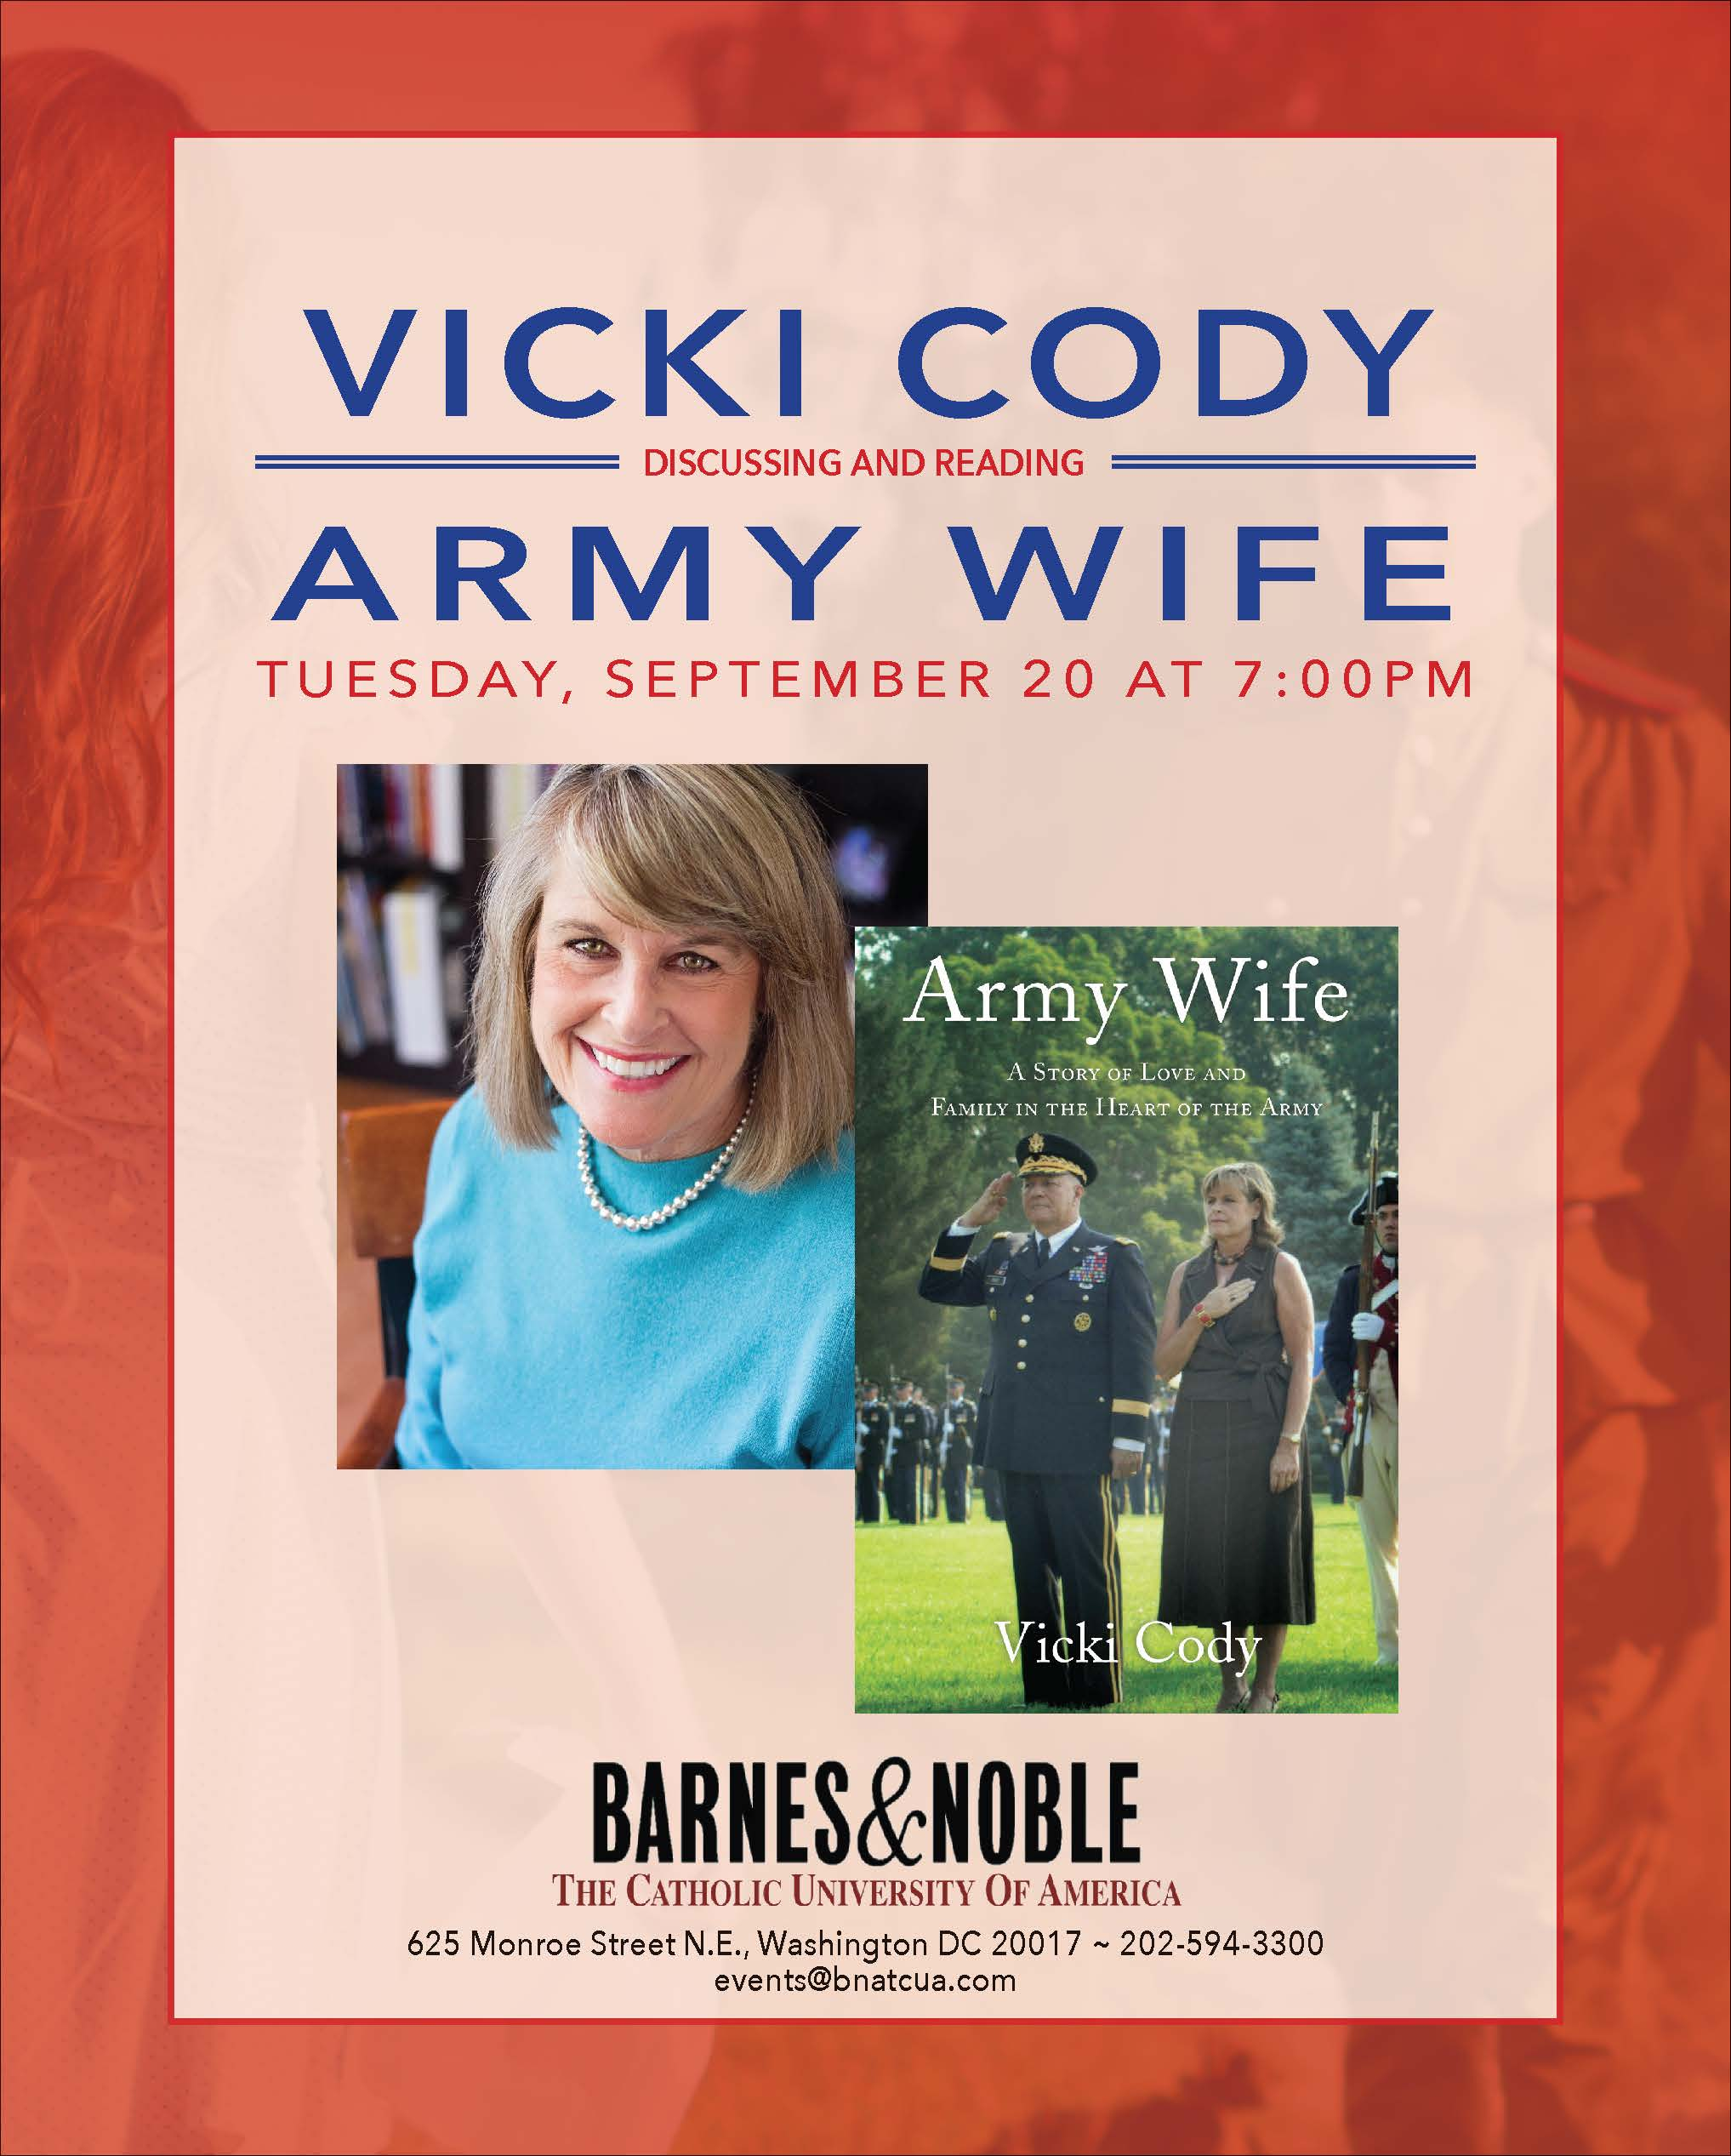 Barnes & Noble:  Army Wife by Vicki Cody